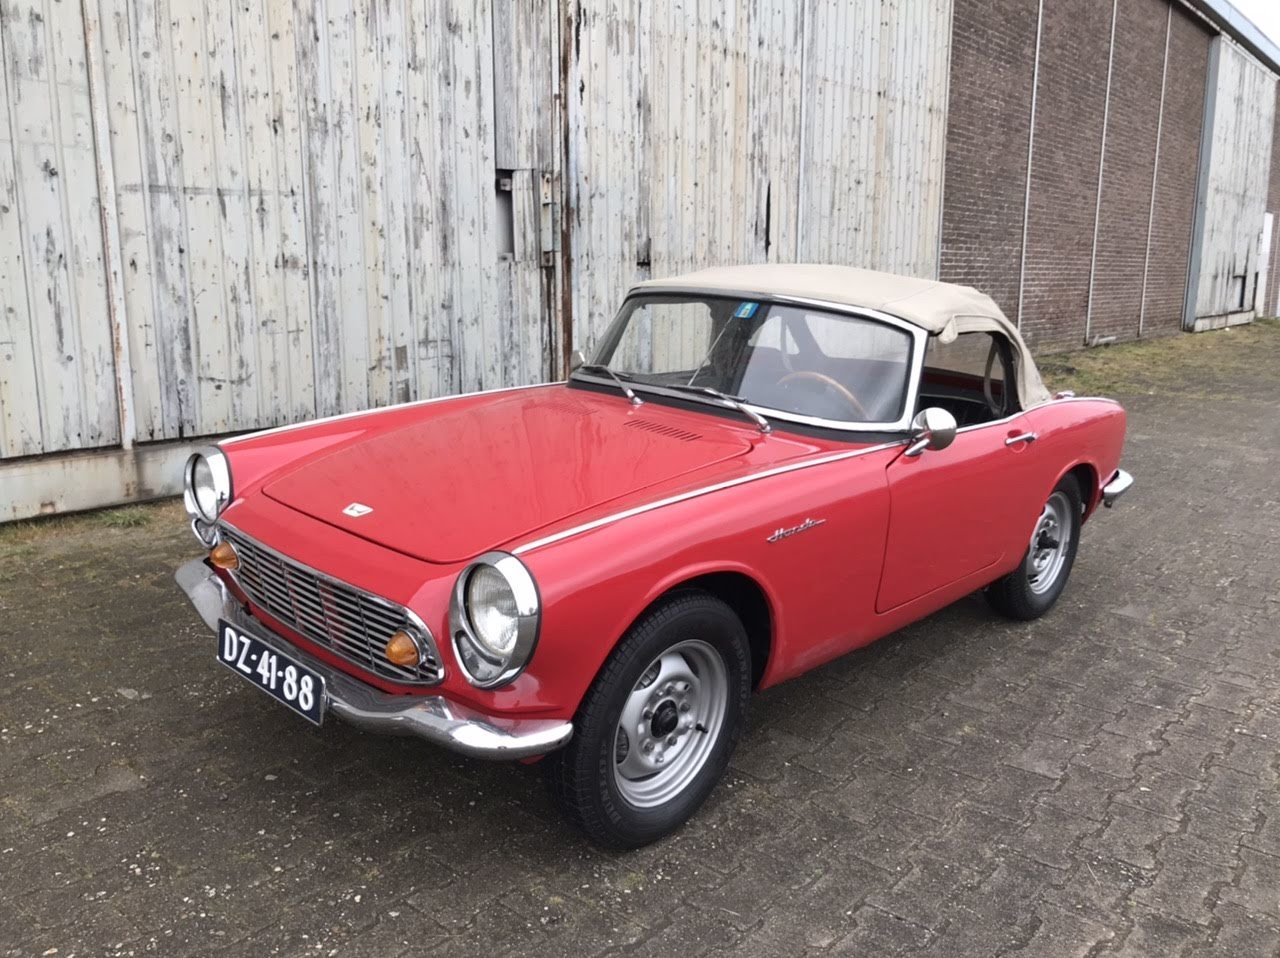 1966 Honda S600 roadster. Very nice, rustfree  For Sale (picture 1 of 6)